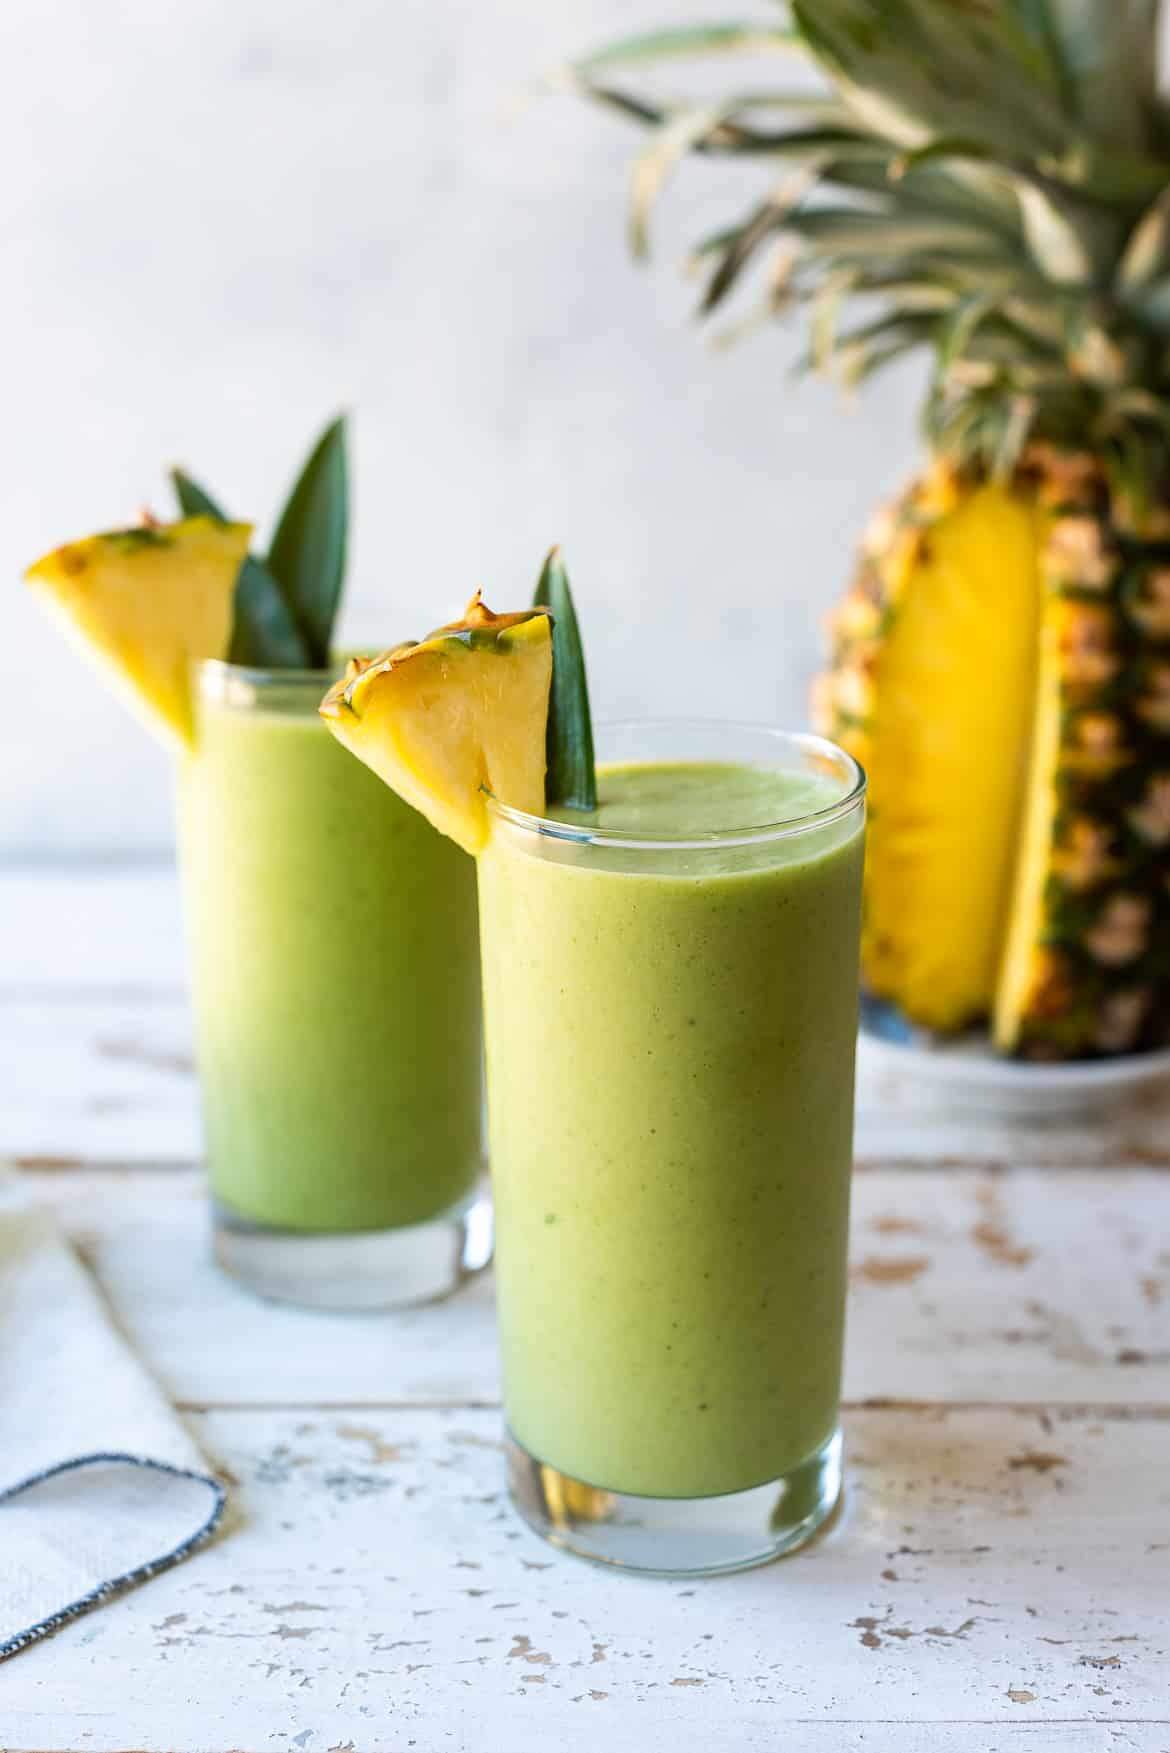 Piña Colada Green Smoothies in glasses with fresh pineapple garnish.